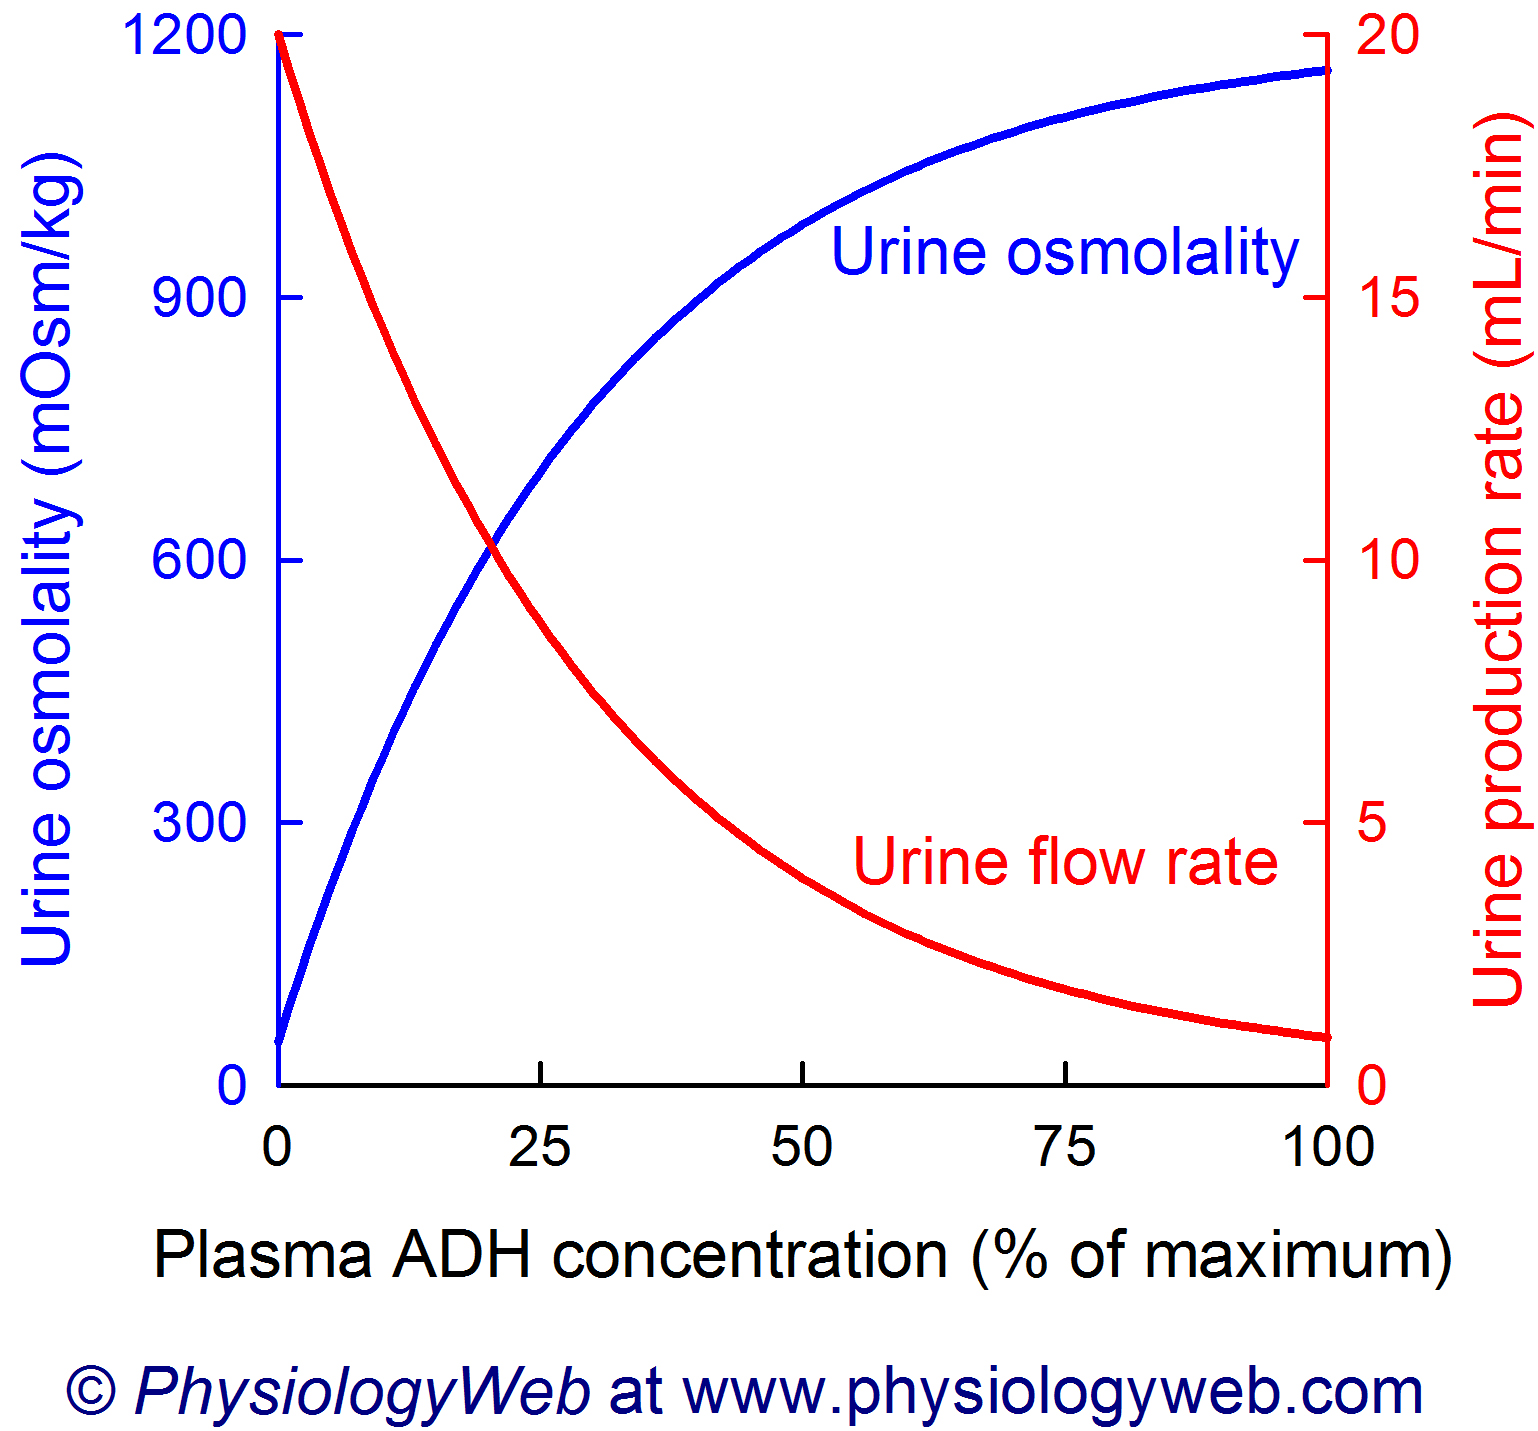 Relationship between plasma antidiuretic hormone (ADH) concentration and urine osmolality and urine production rate.